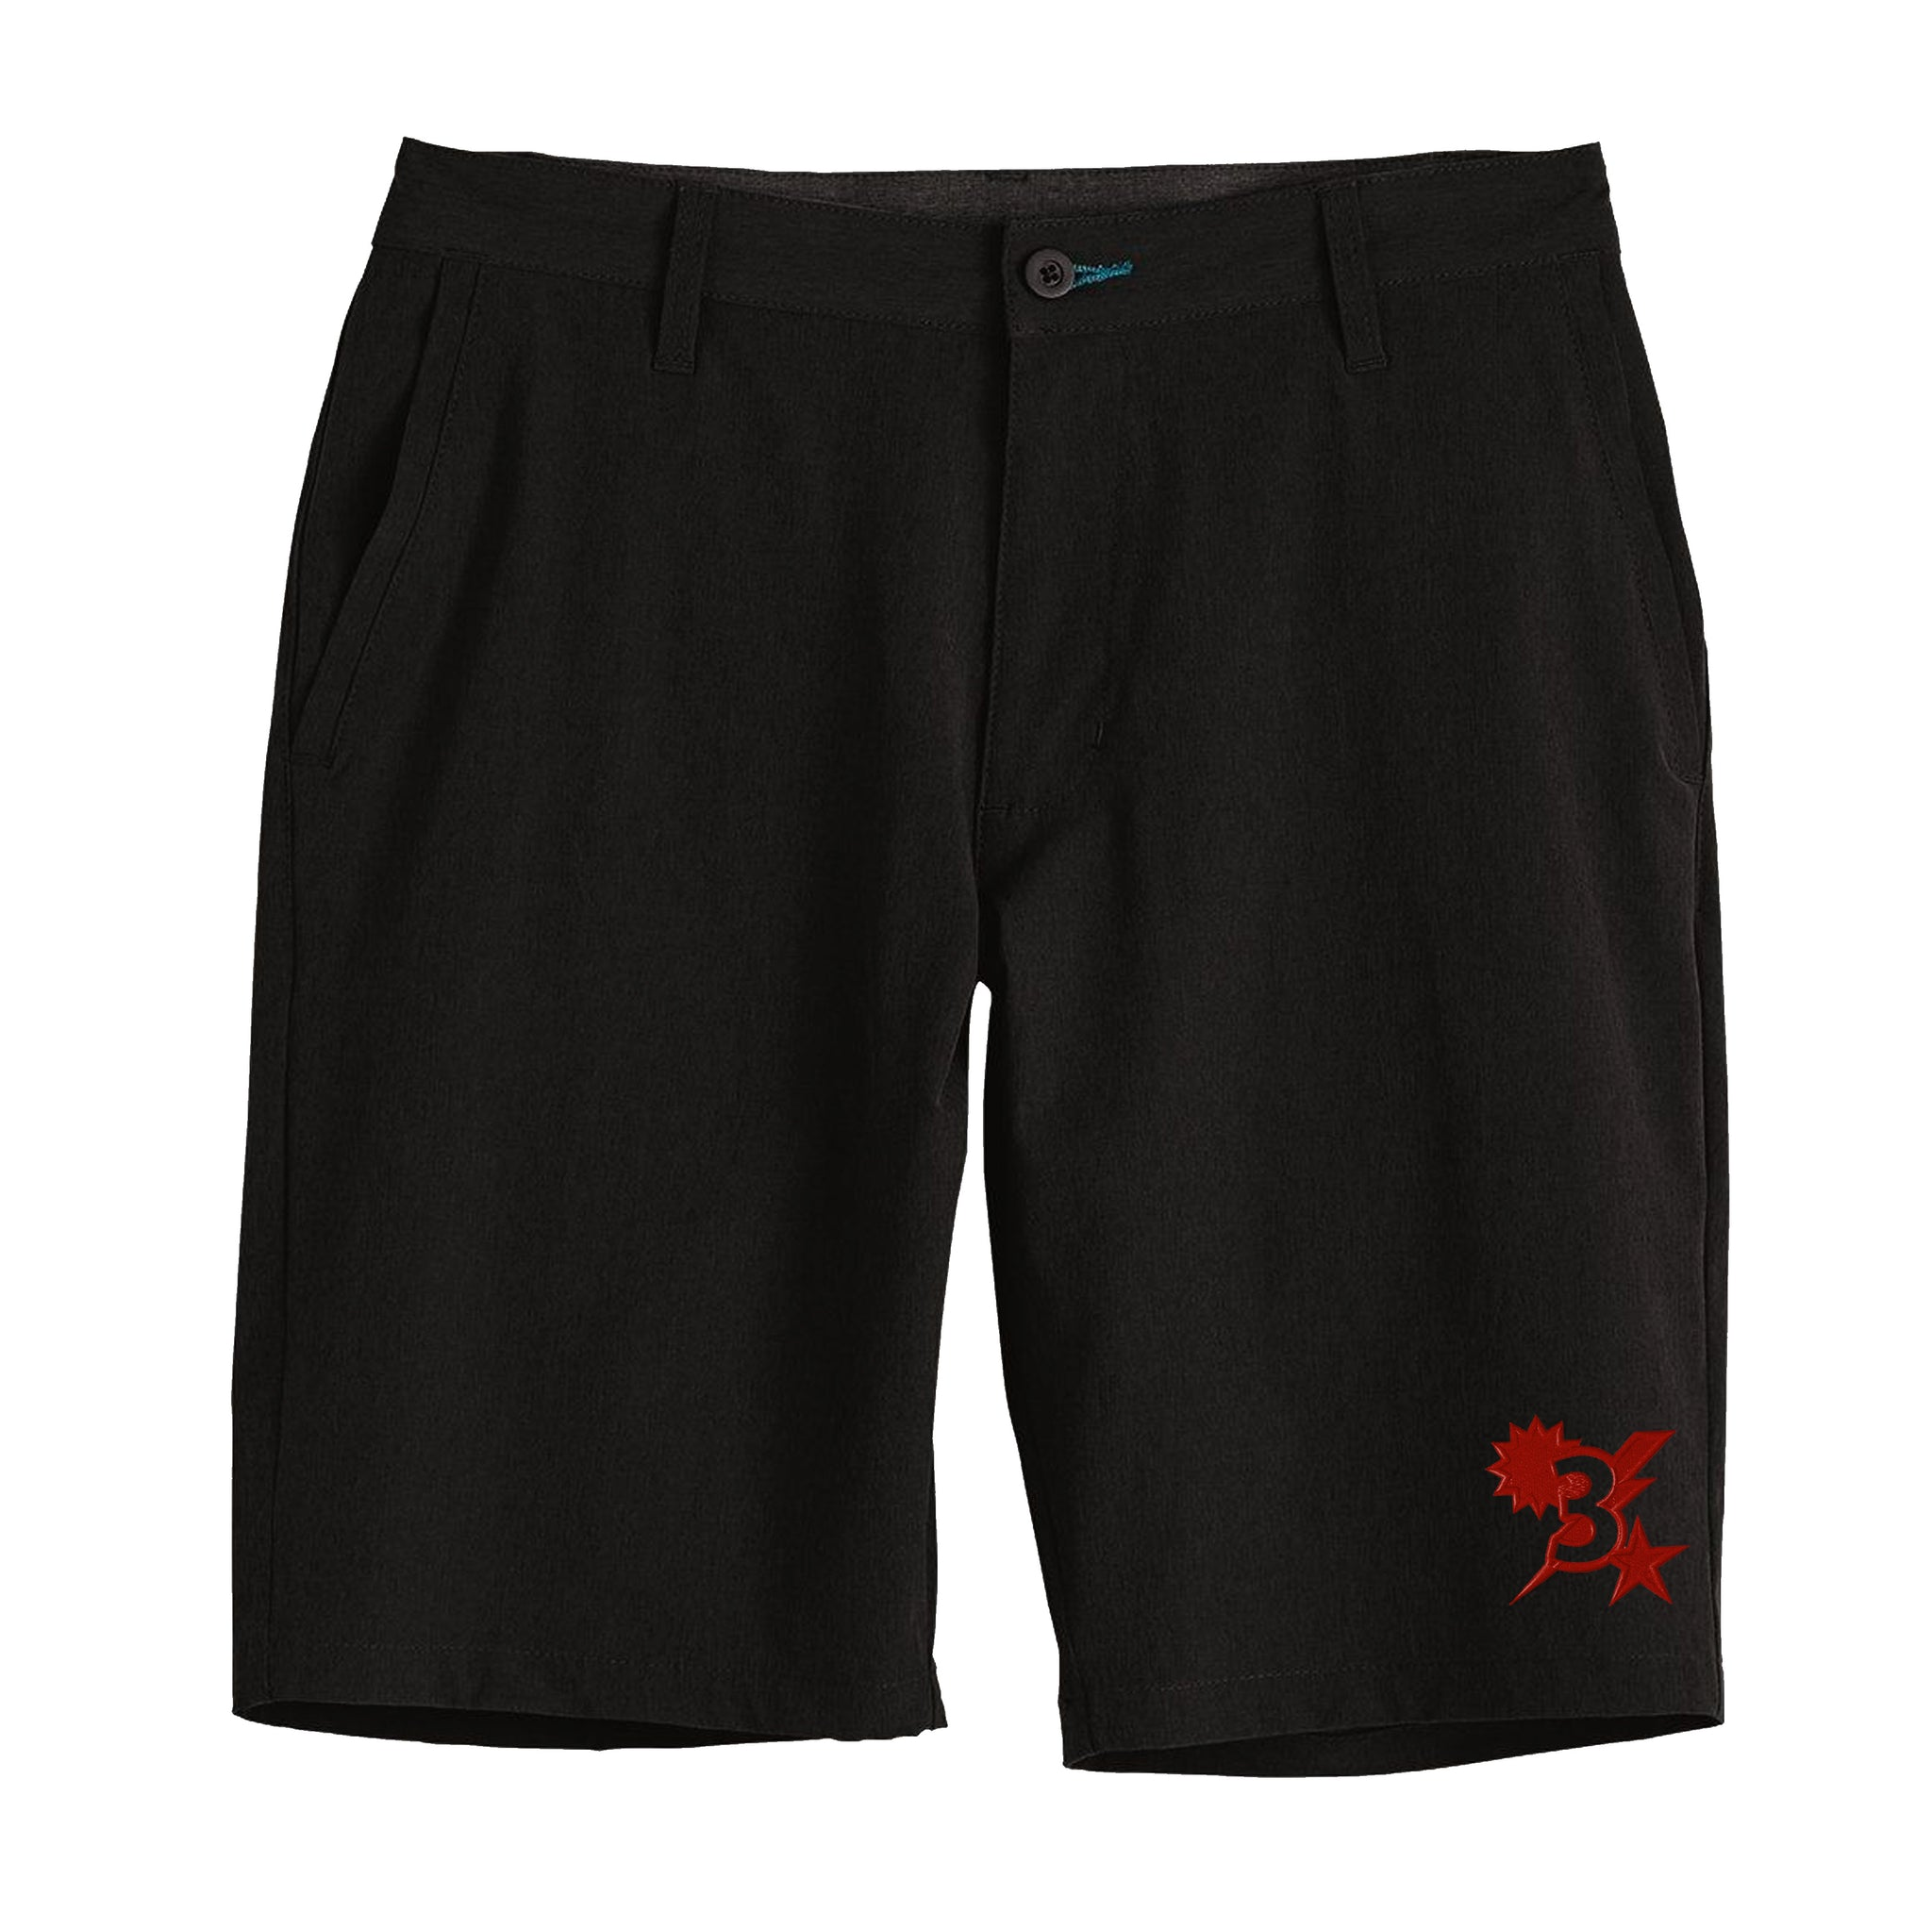 Batt SSB Board Shorts